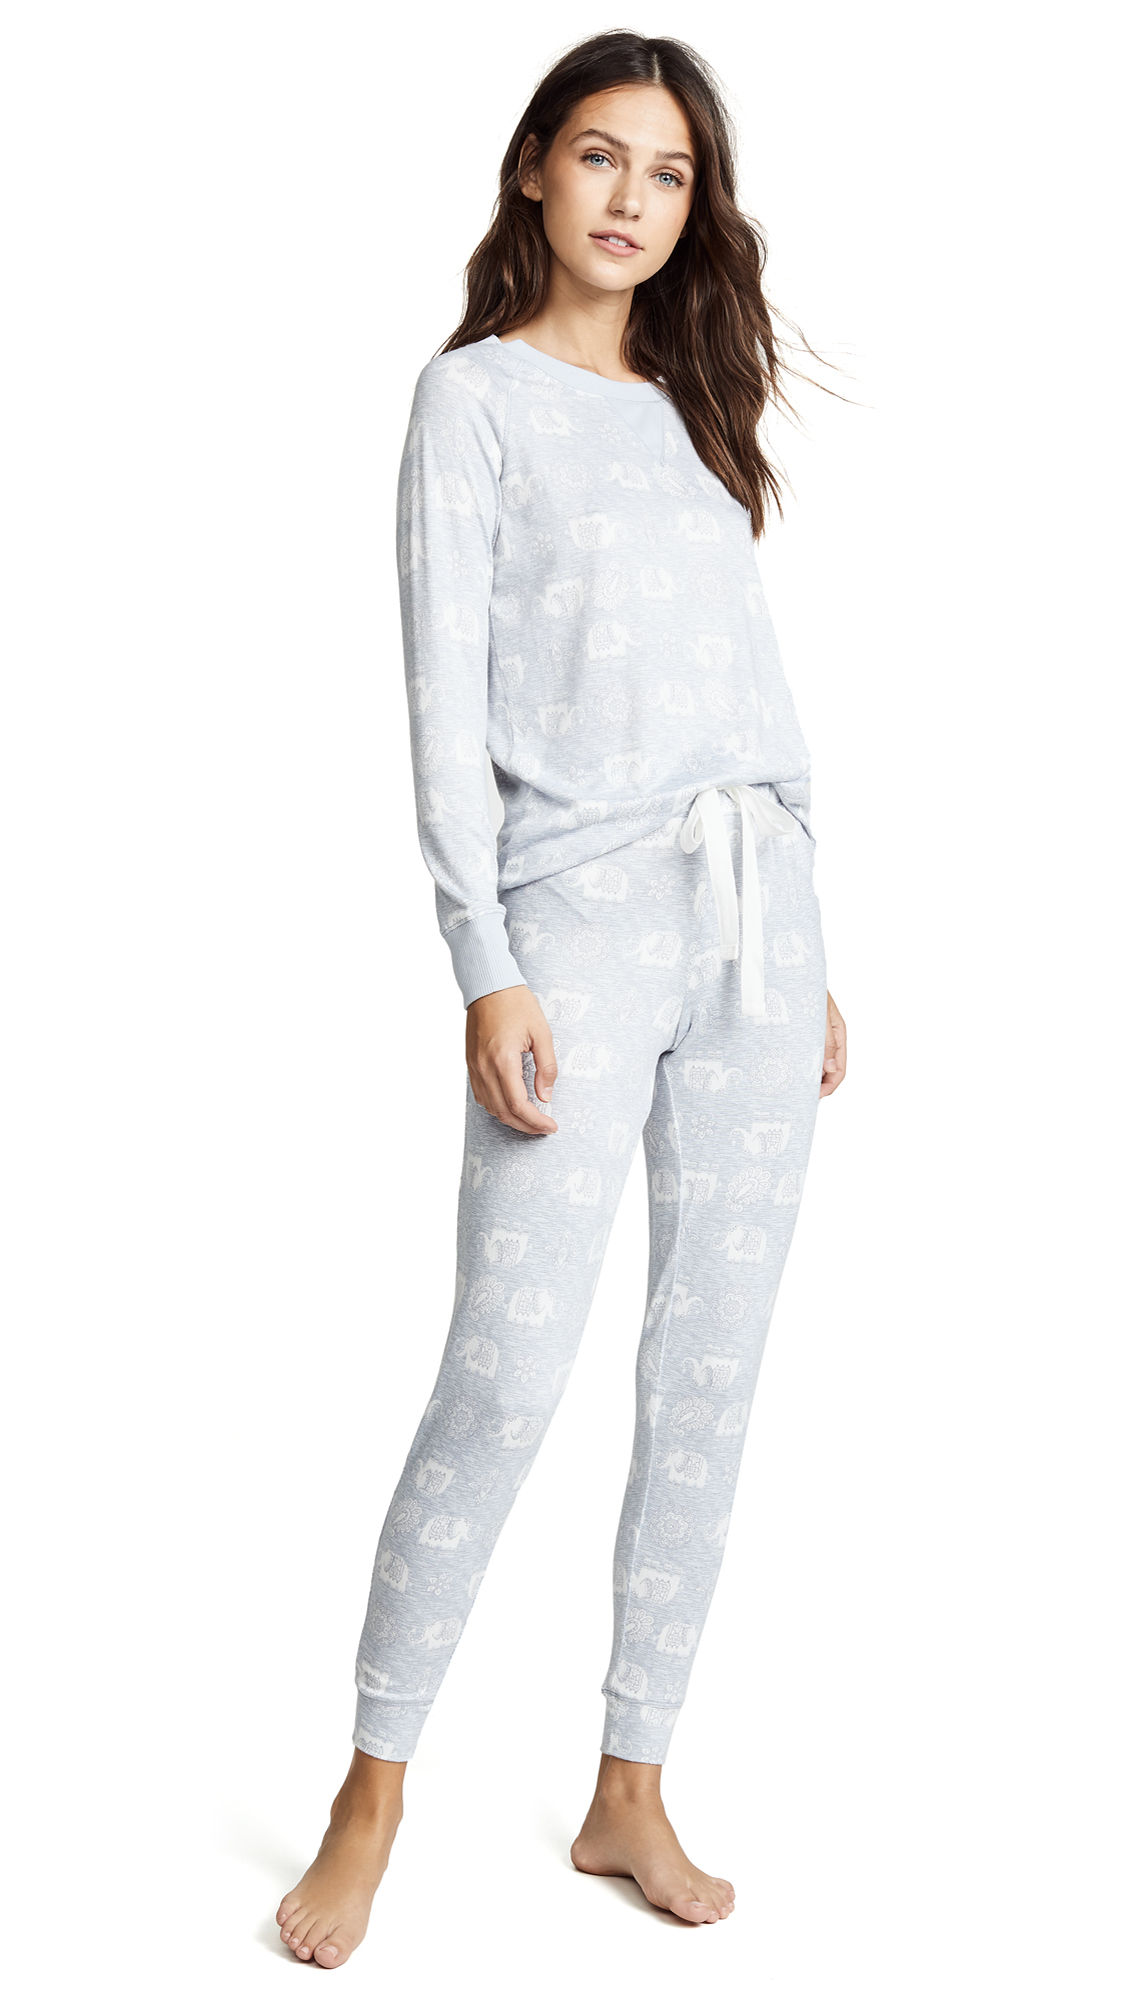 Emerson Road Elephant Tapestry PJ Set In High Rise